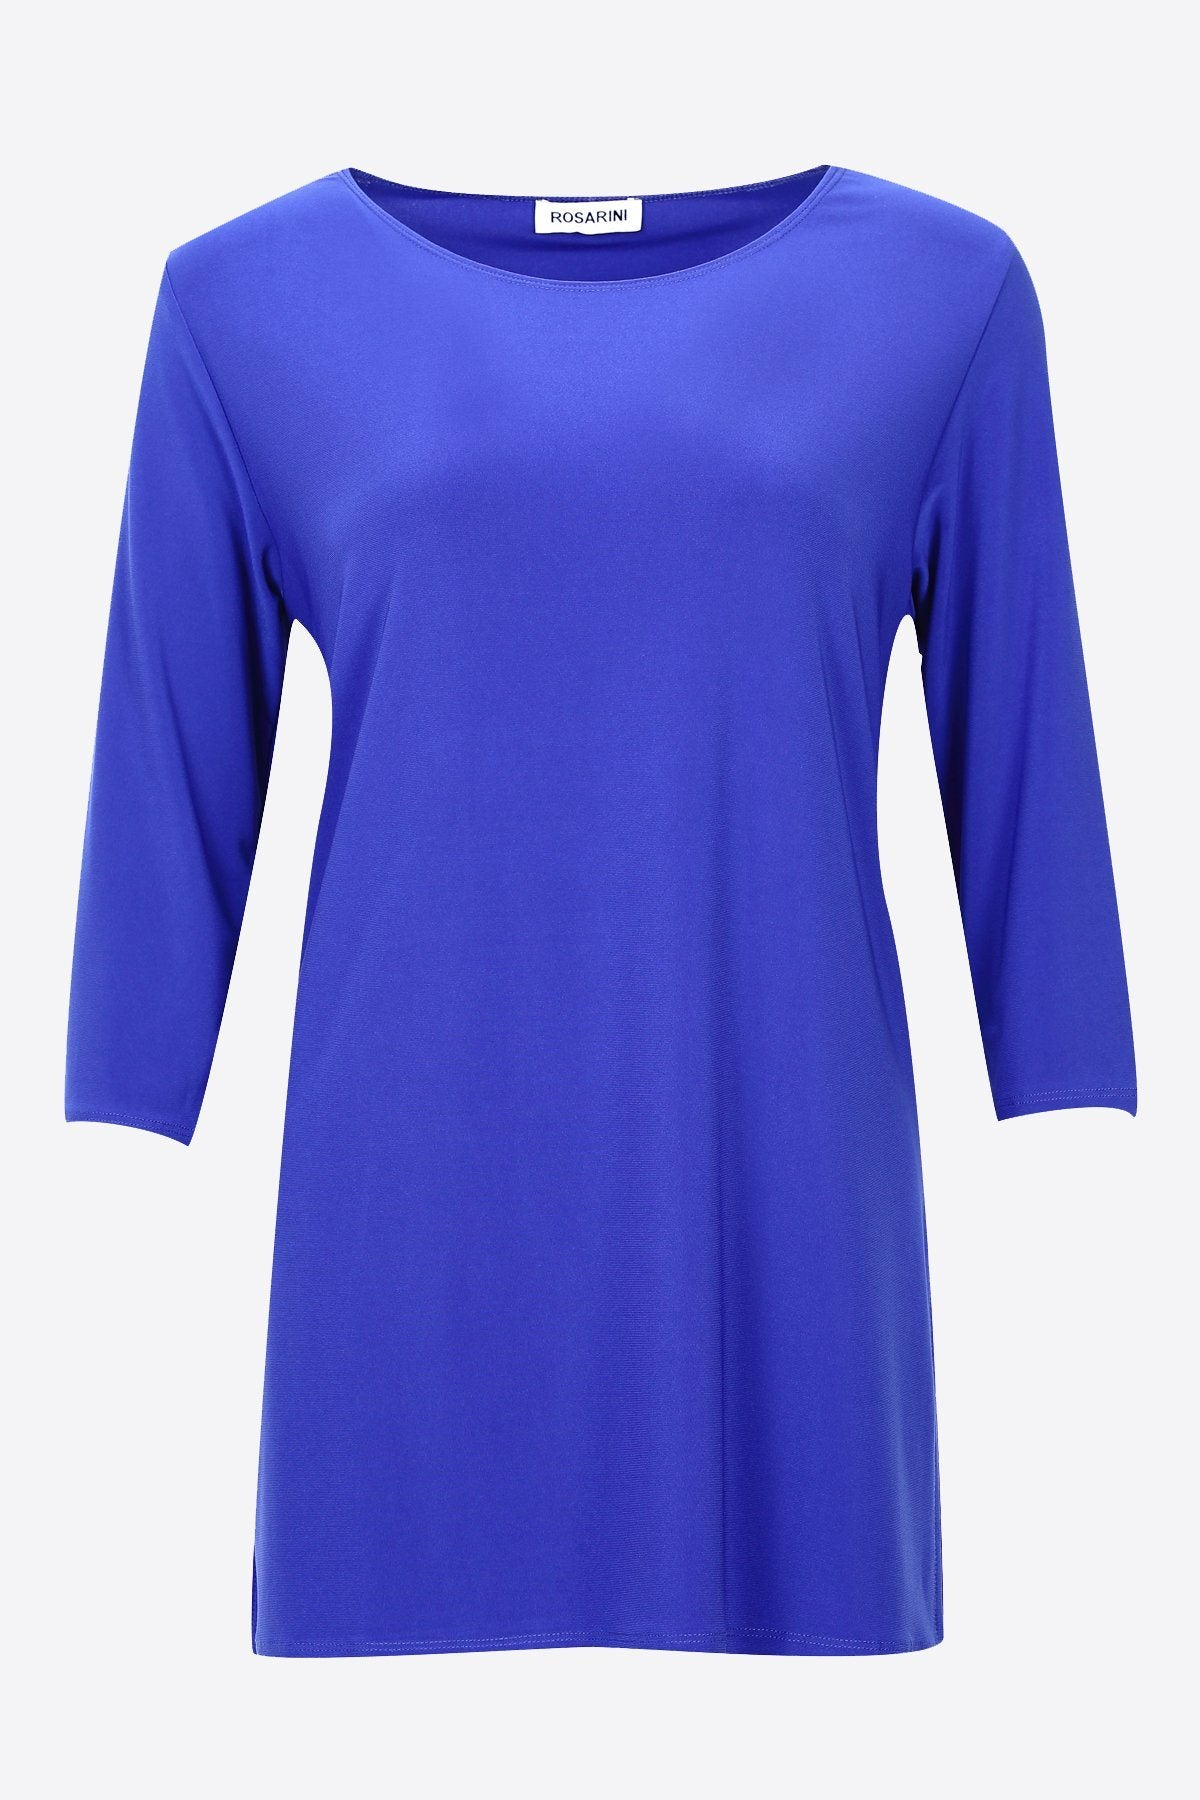 3/4 Sleeve Side Splits Boat Neck Top cobalt blue